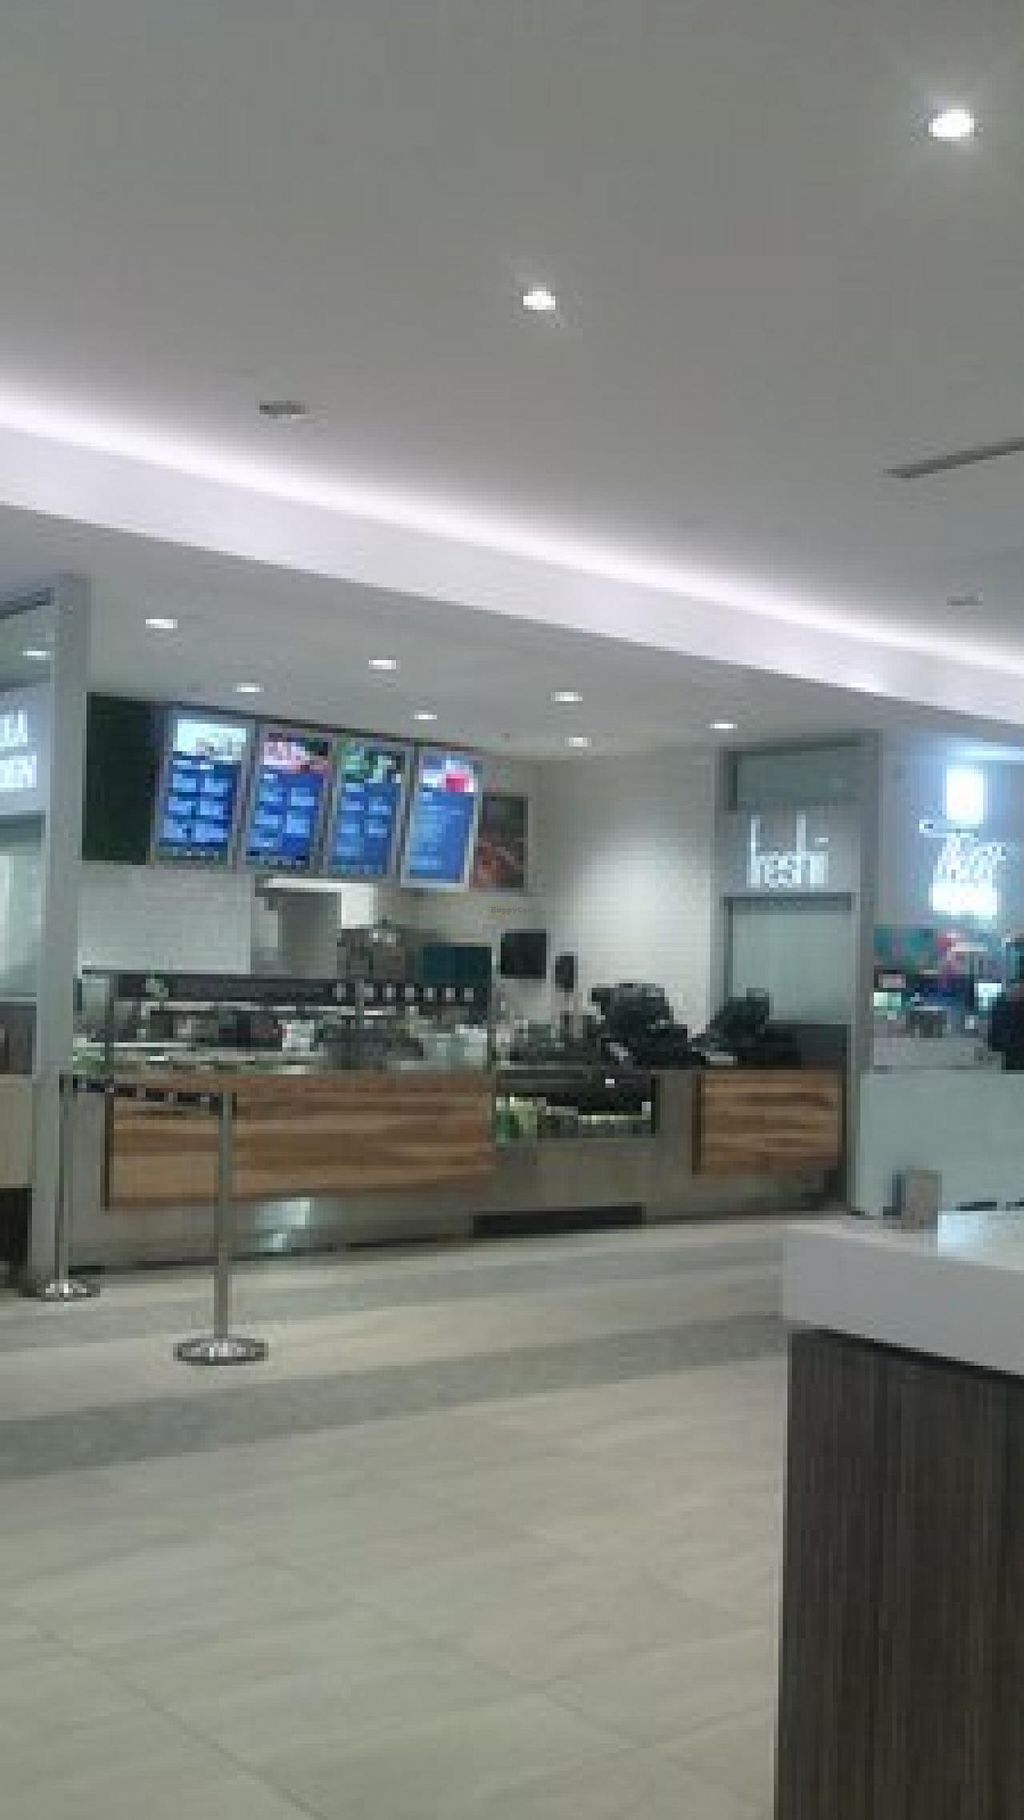 "Photo of freshii  by <a href=""/members/profile/QuothTheRaven"">QuothTheRaven</a> <br/>Freshii <br/> November 15, 2014  - <a href='/contact/abuse/image/52942/85742'>Report</a>"